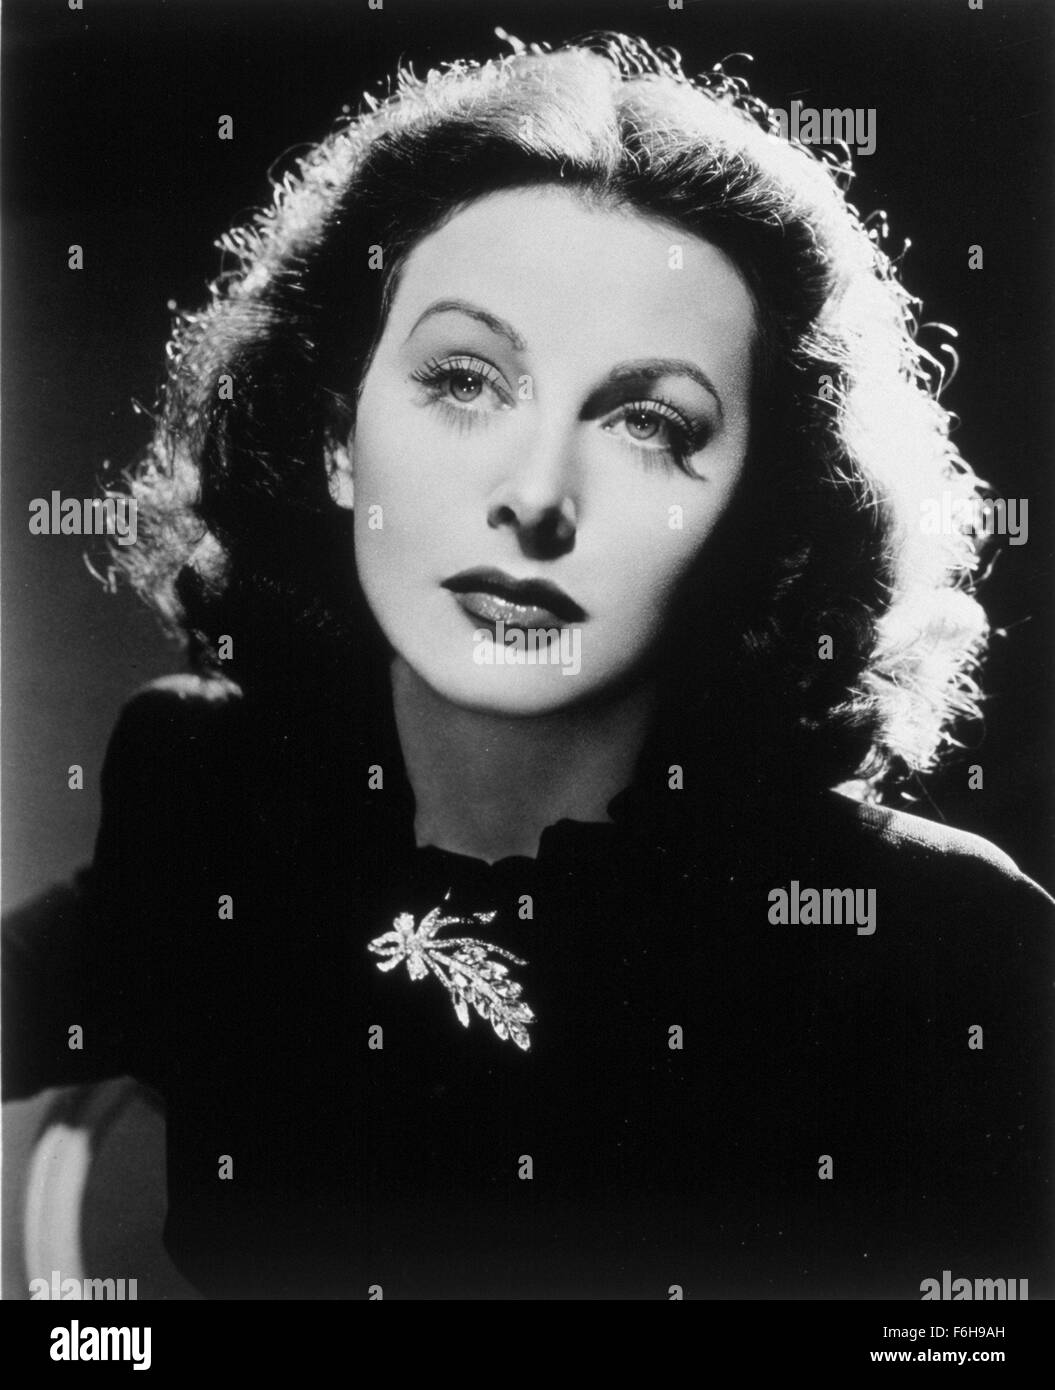 Hedy Lamarr Stock Photos & Hedy Lamarr Stock Images - Alamy